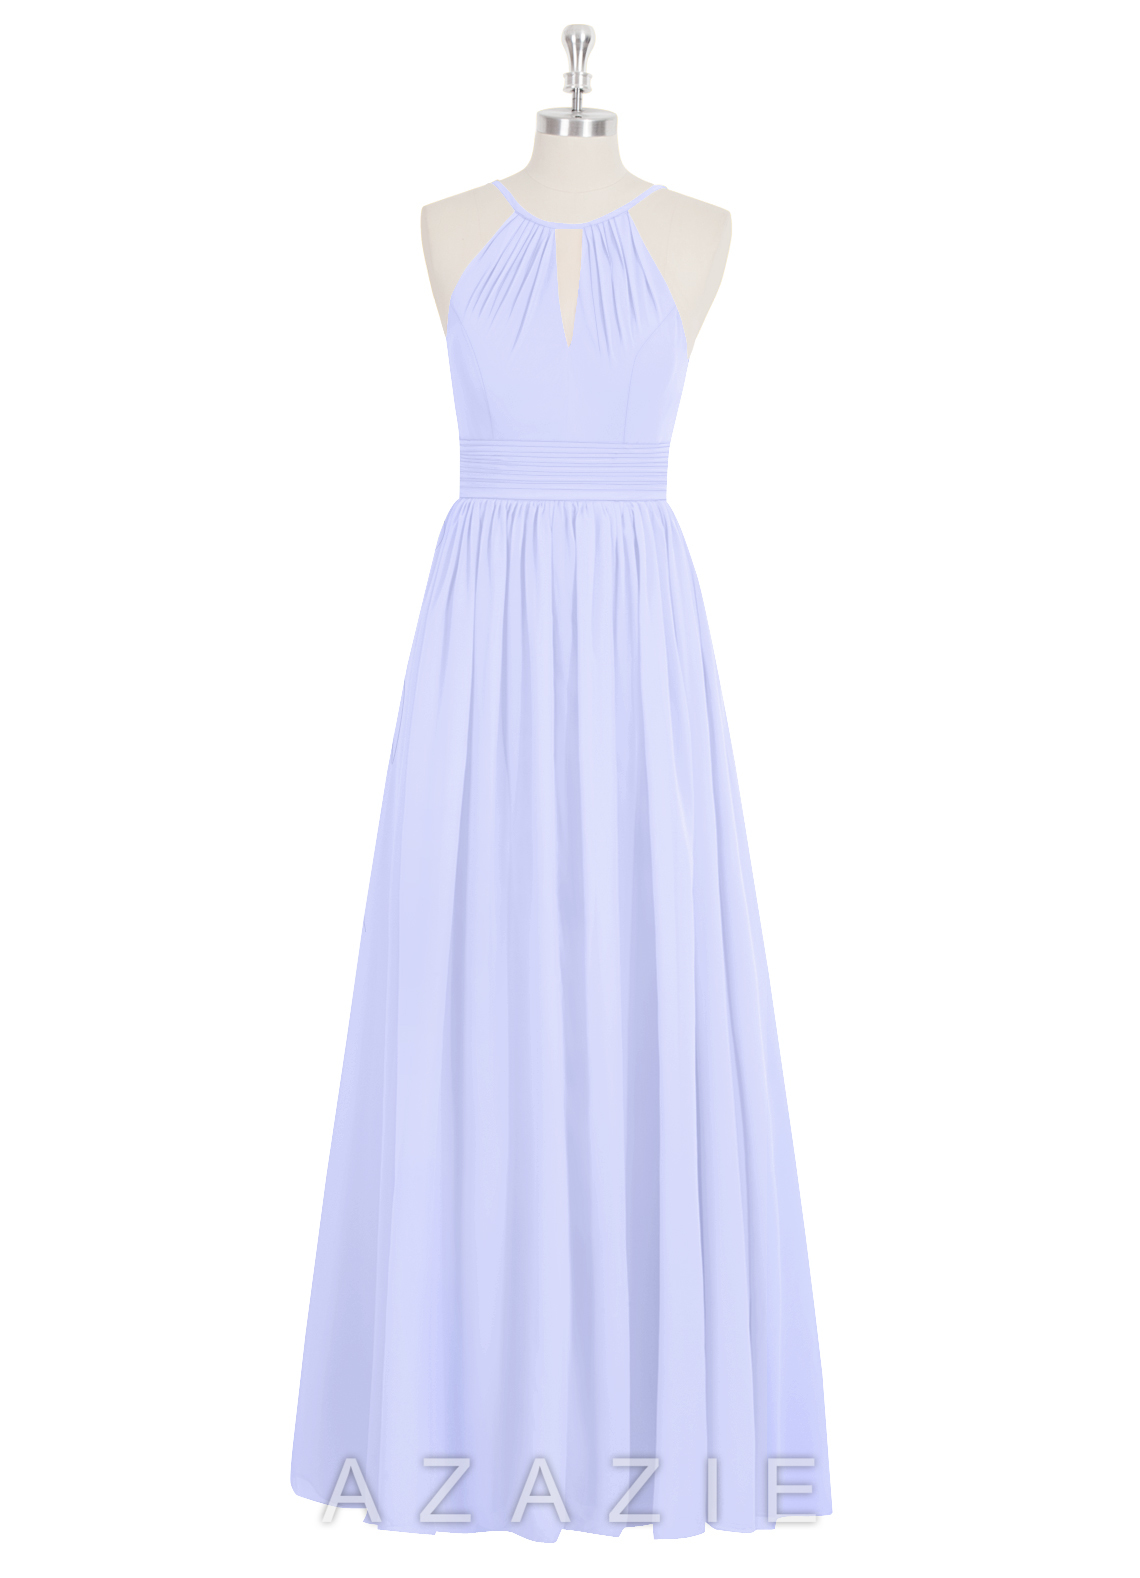 Azazie Cherish Bridesmaid Dress | Azazie